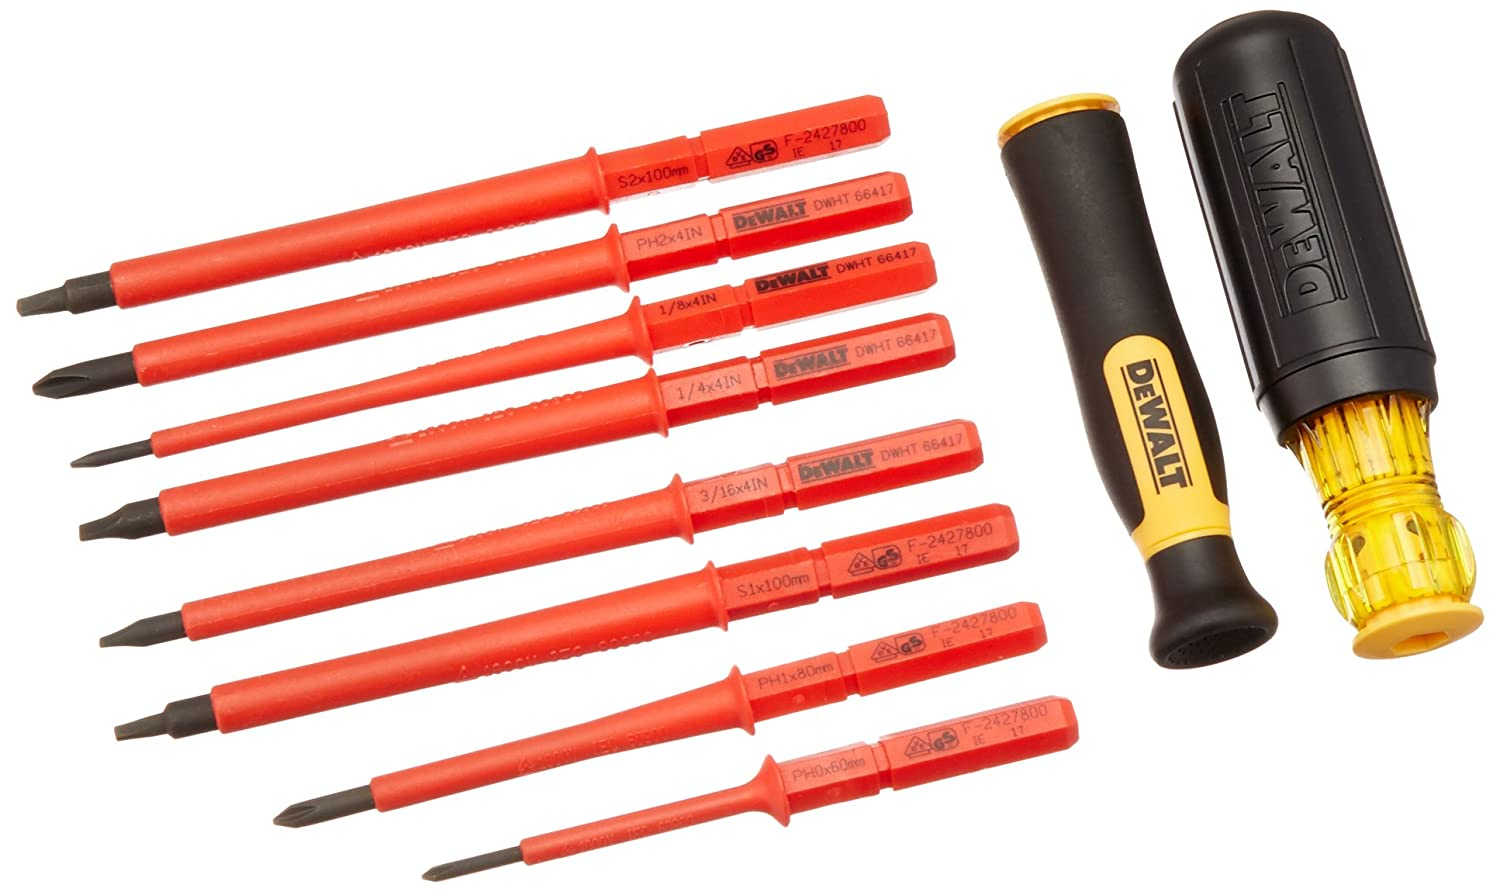 Best Insulated Screwdrivers Electricians Top 6 2019